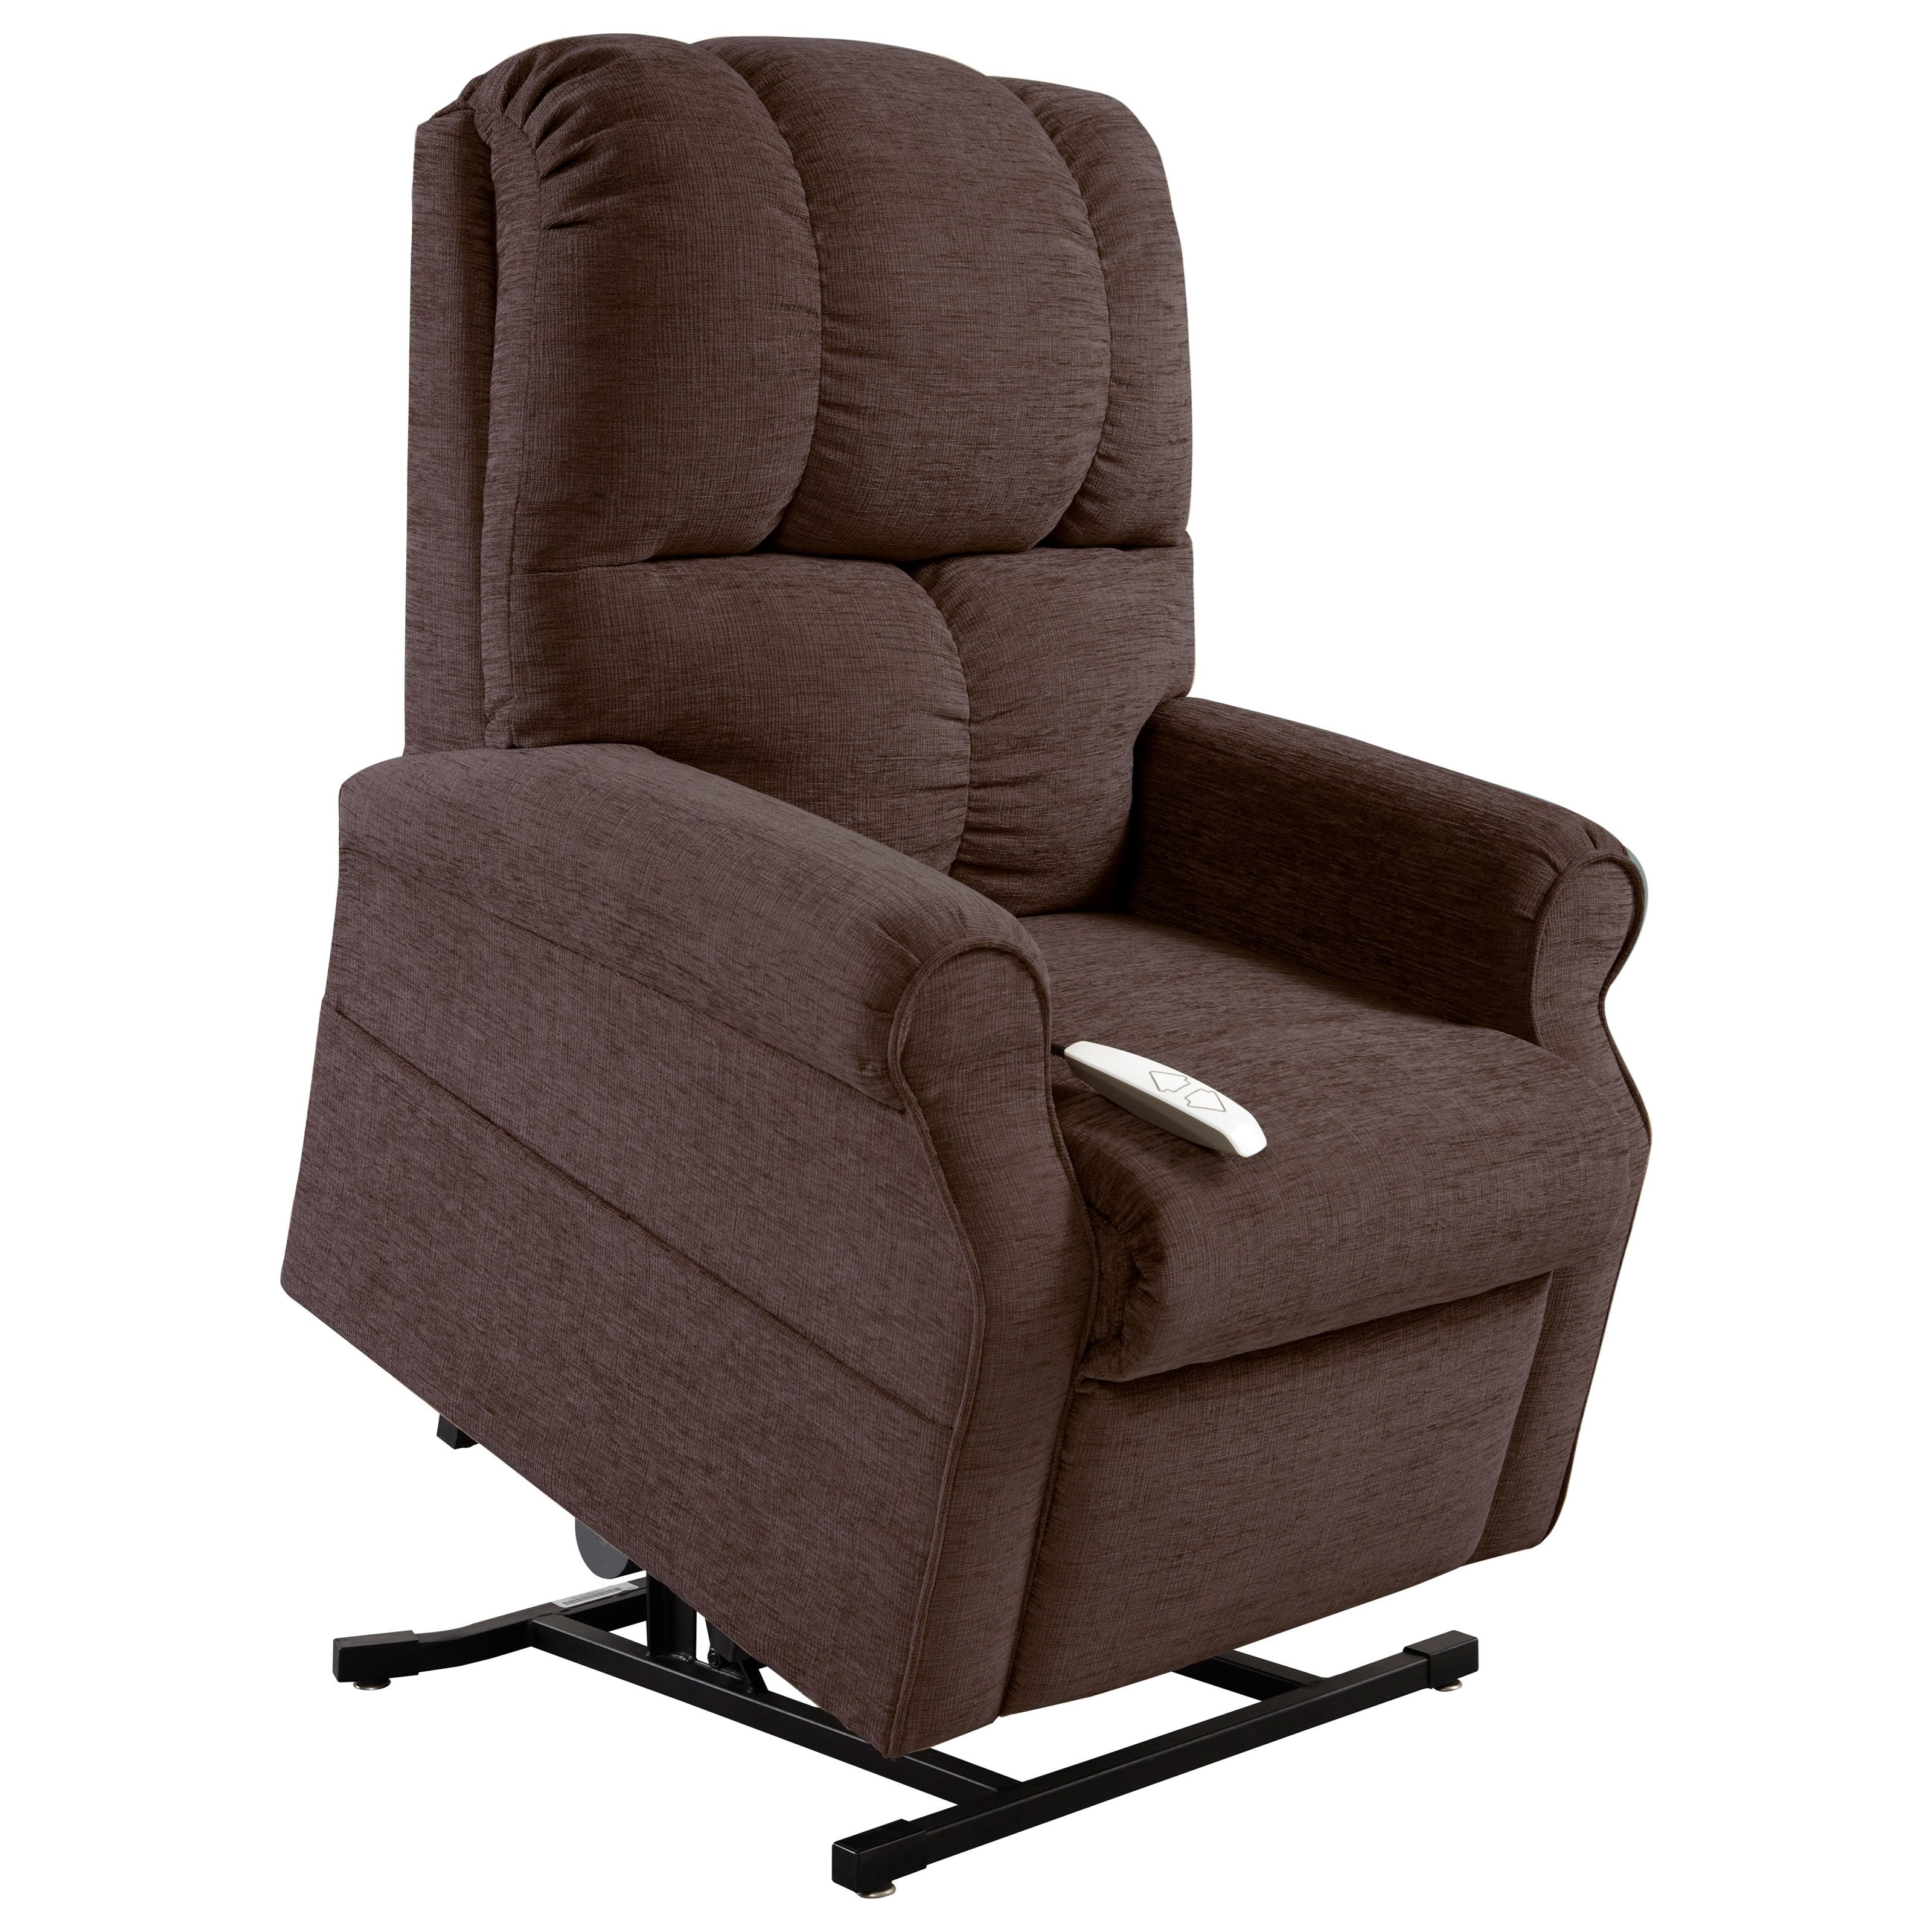 Recliner Lift Chairs Windermere Motion Lift Chairs Celestial 3 Position